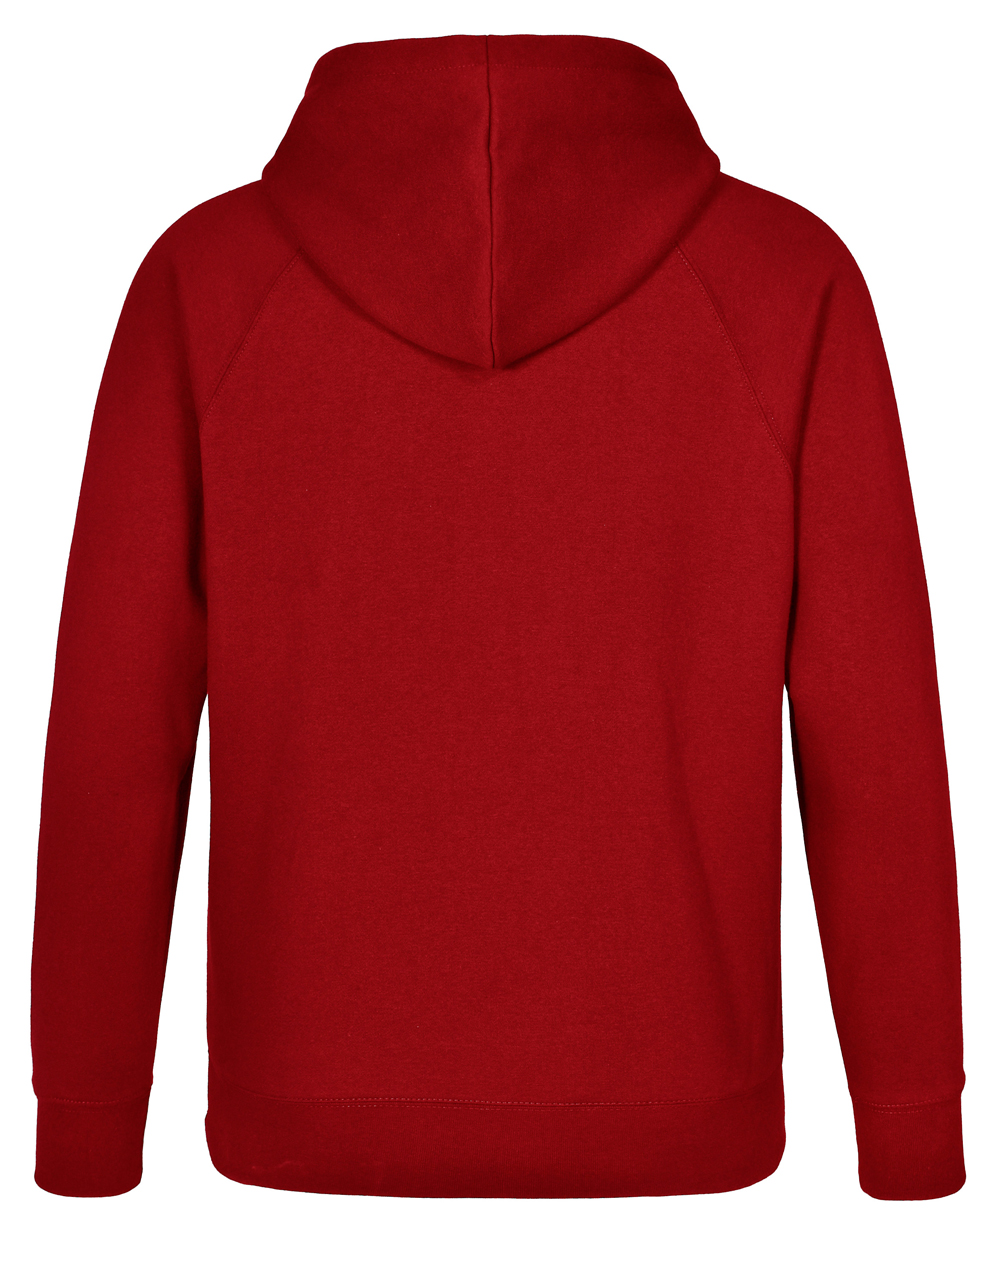 https://s3-ap-southeast-1.amazonaws.com/ws-imgs/OUTWEAR/FL07_Red_Back_l.jpg